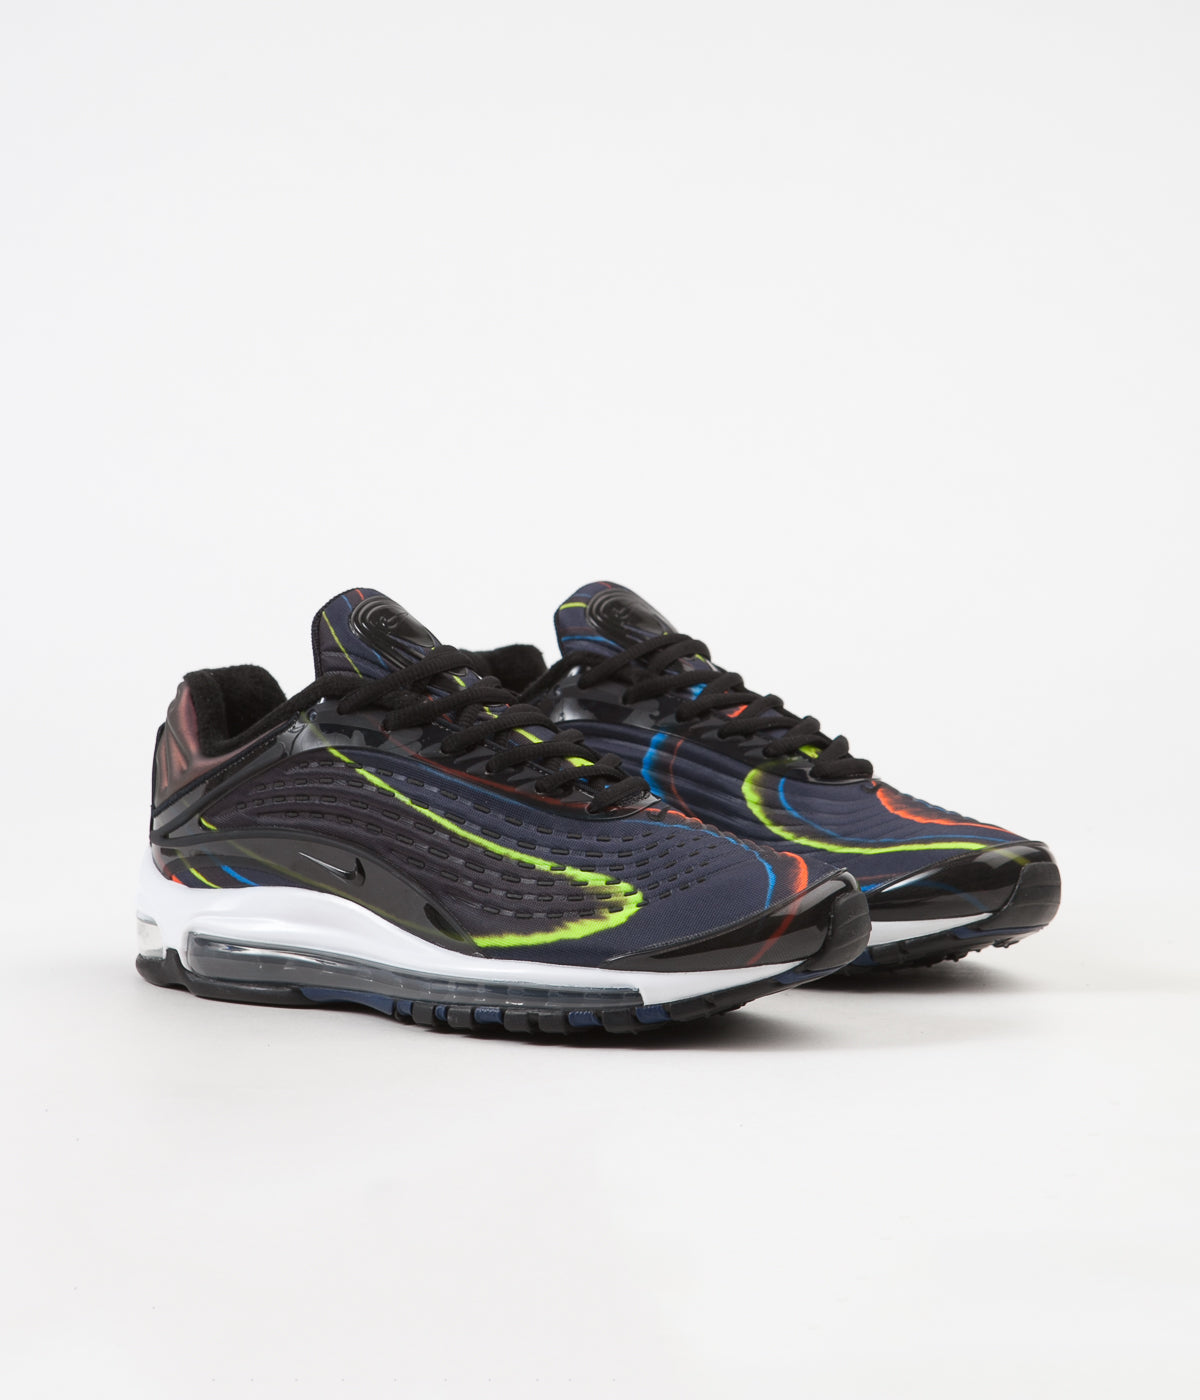 6fbf95e59c1aaa ... Nike Air Max Deluxe Shoes - Black   Black - Midnight Navy - Reflect  Silver ...